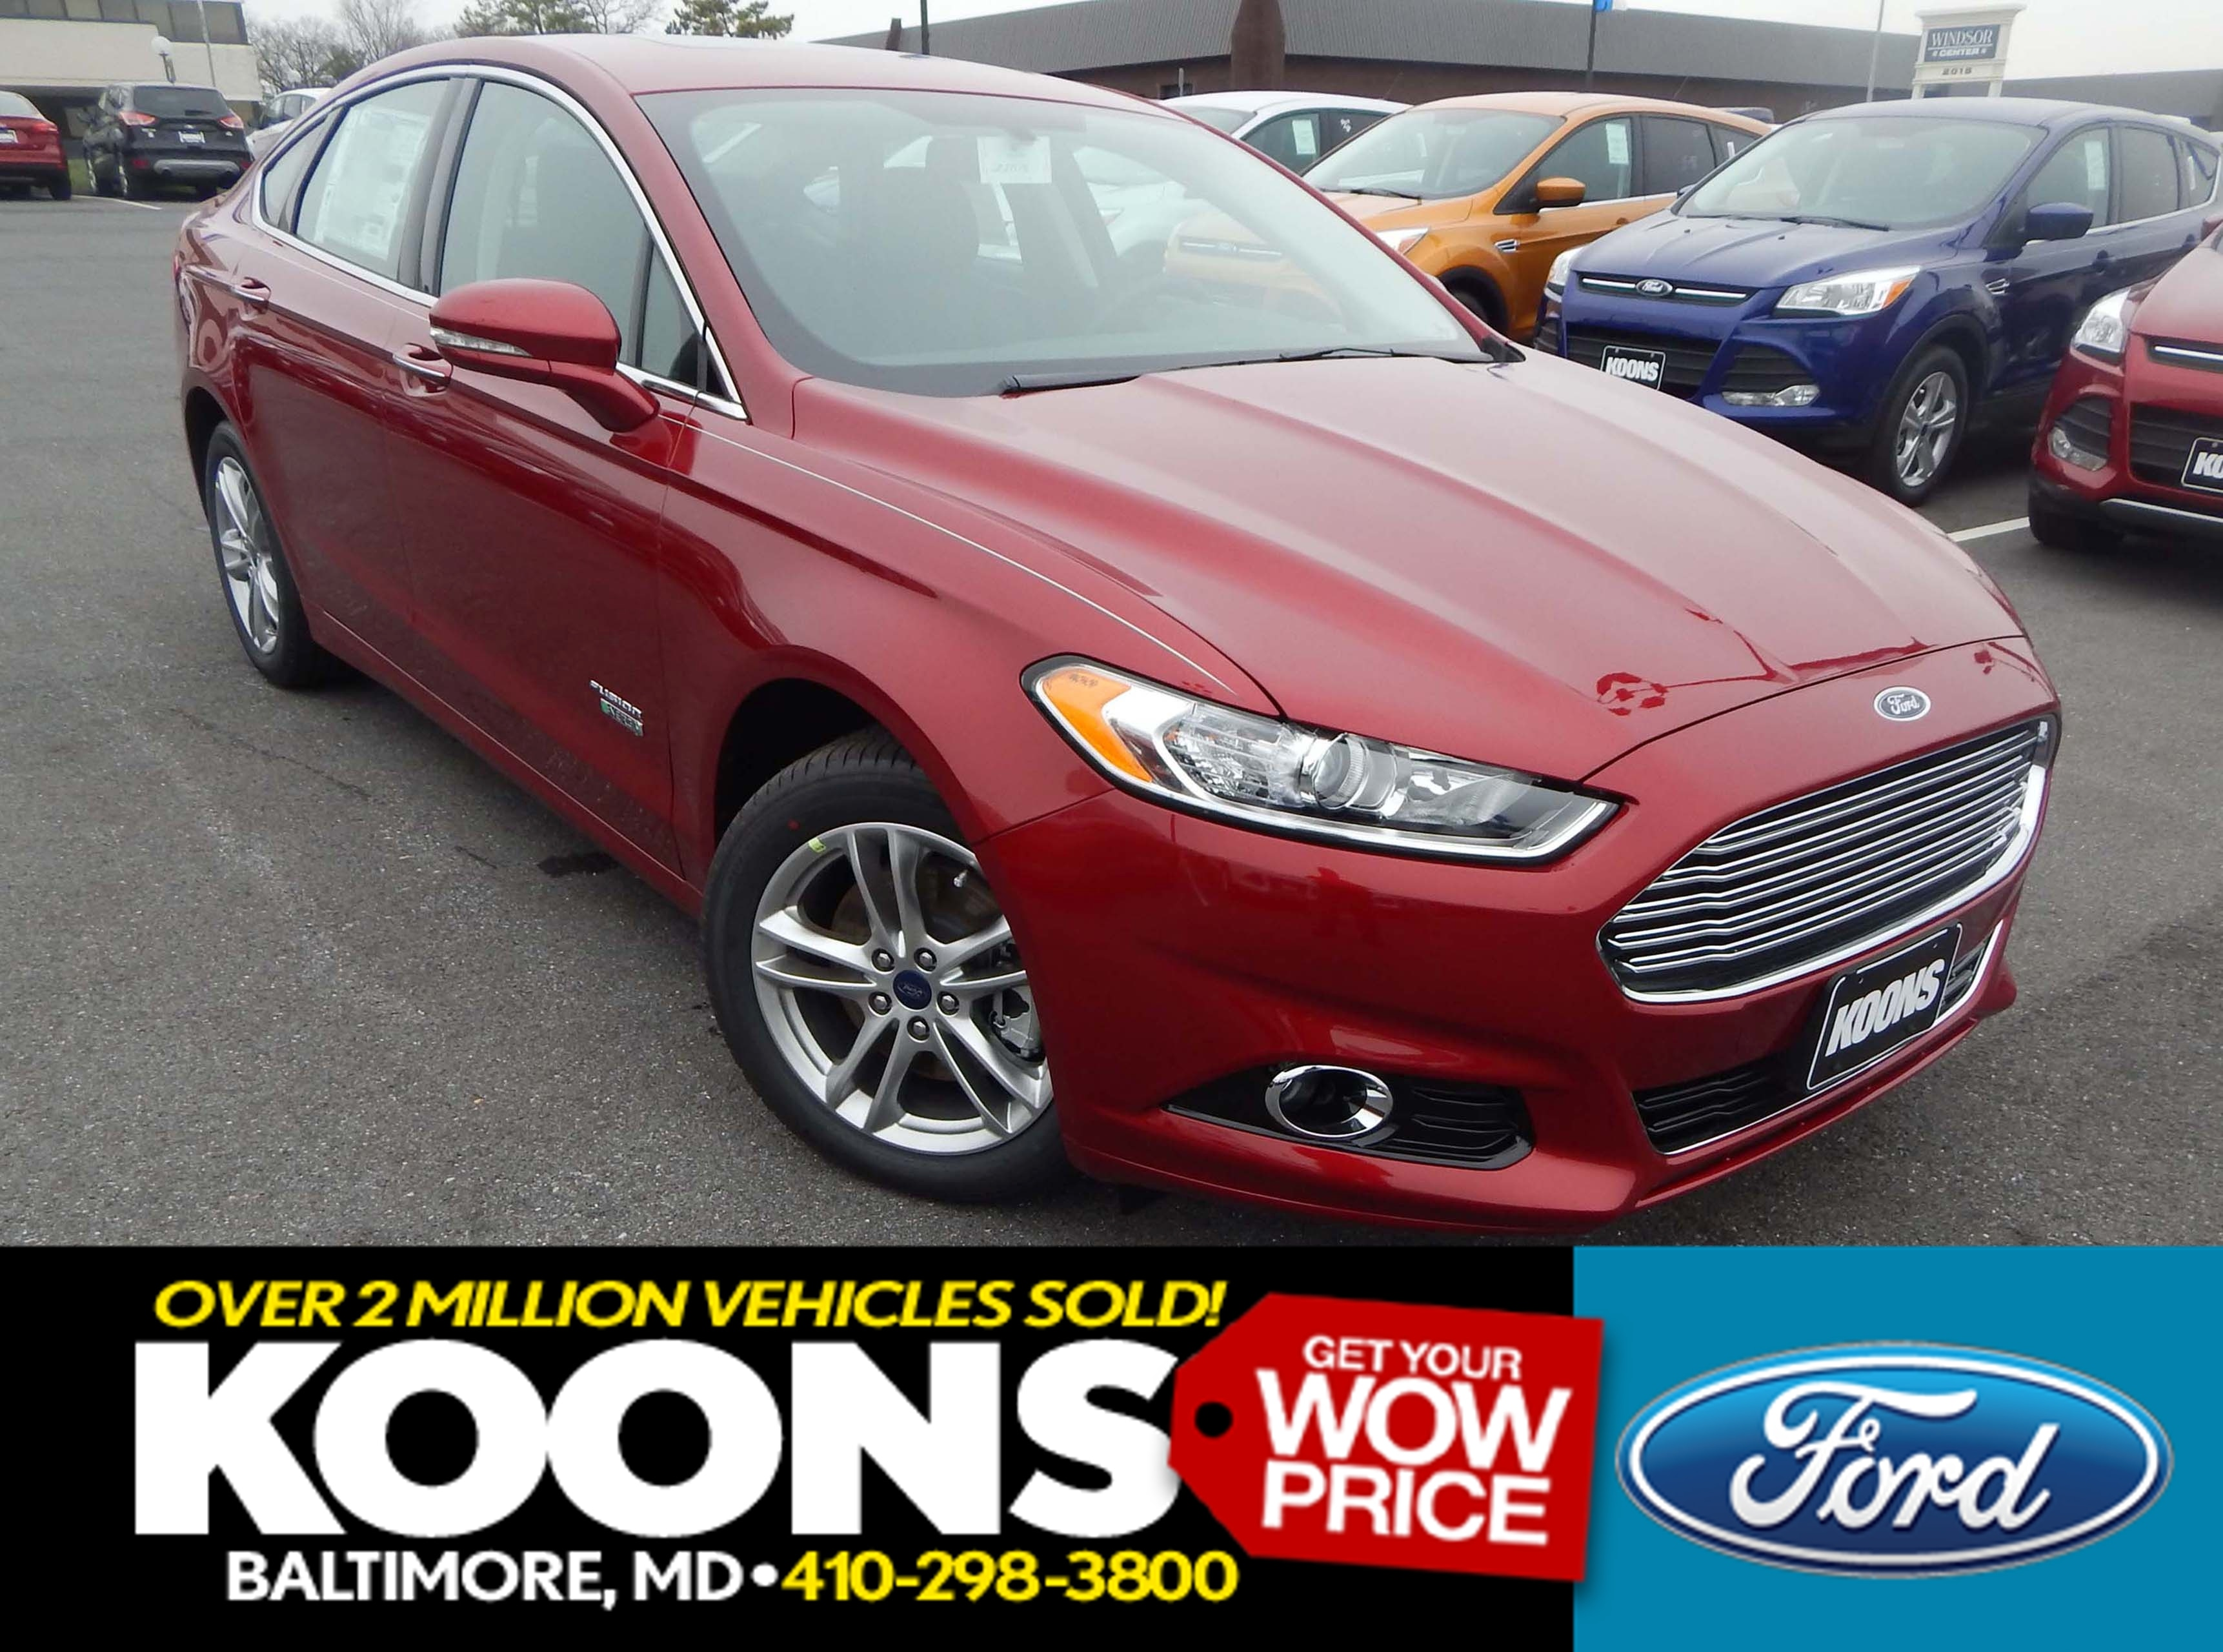 New 2016 Ford Fusion, $27999